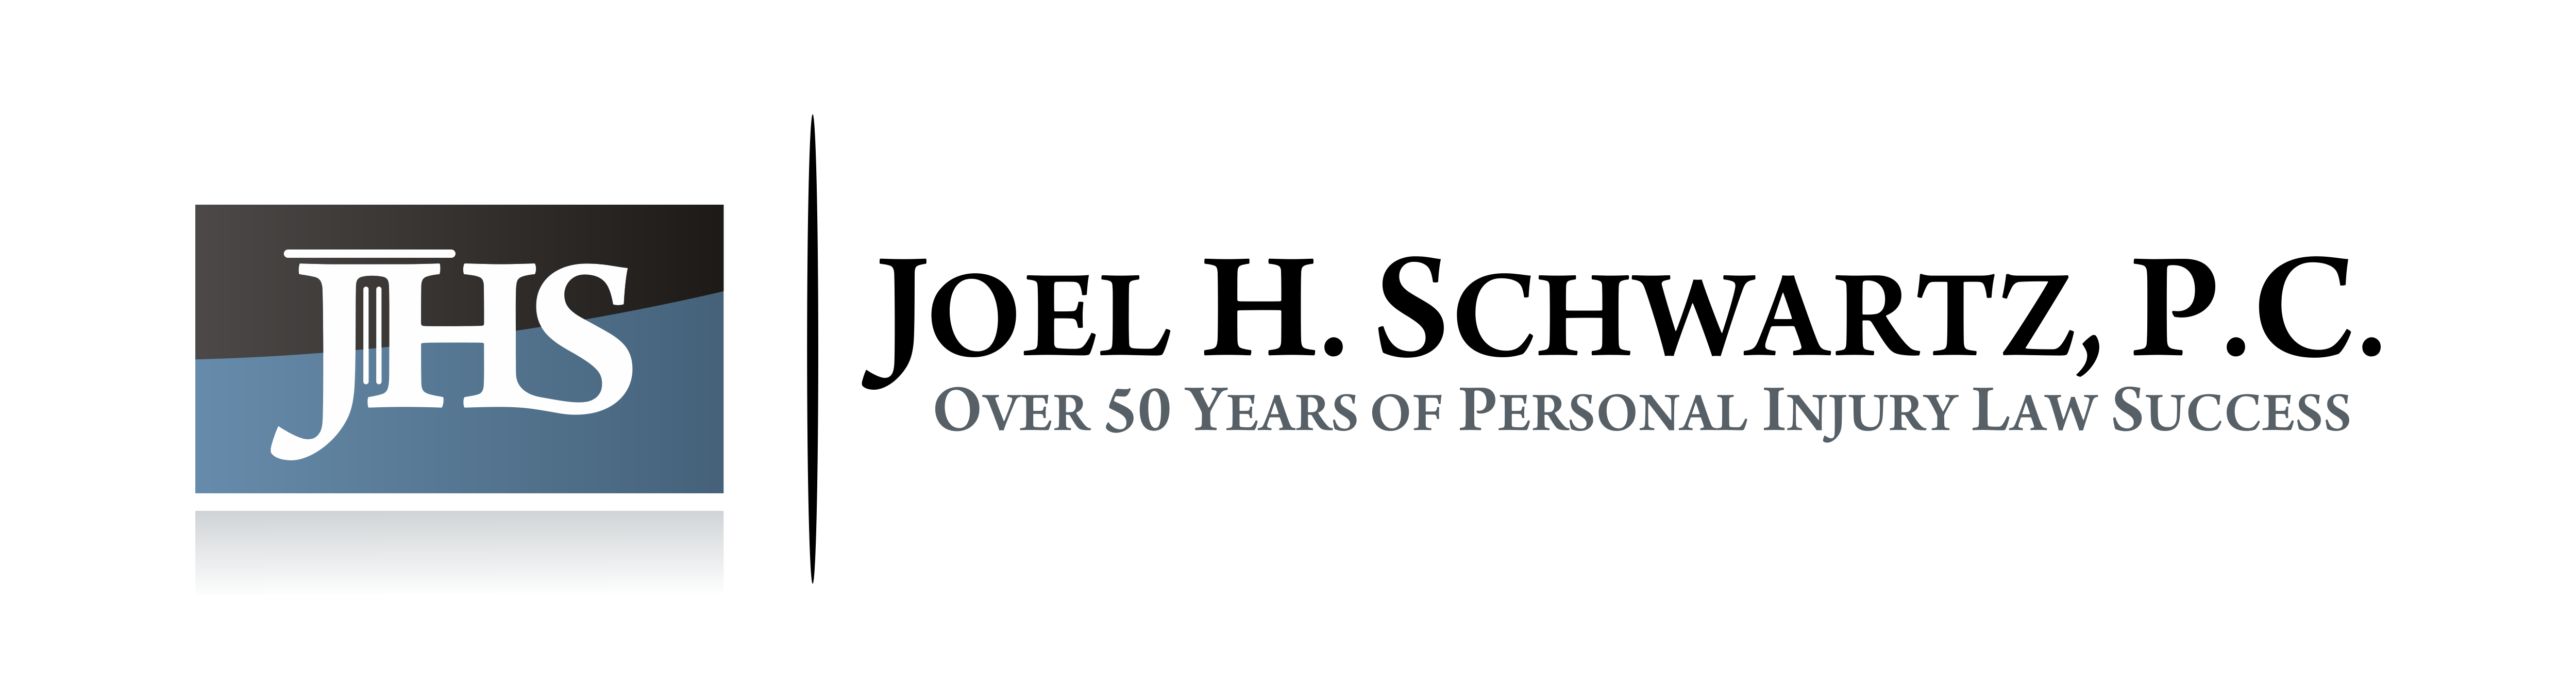 Joel H. Schwartz, P.C. Comprises a Personal Injury Attorney in Brockton, MA, Representing Clients in Personal Injury Cases and More